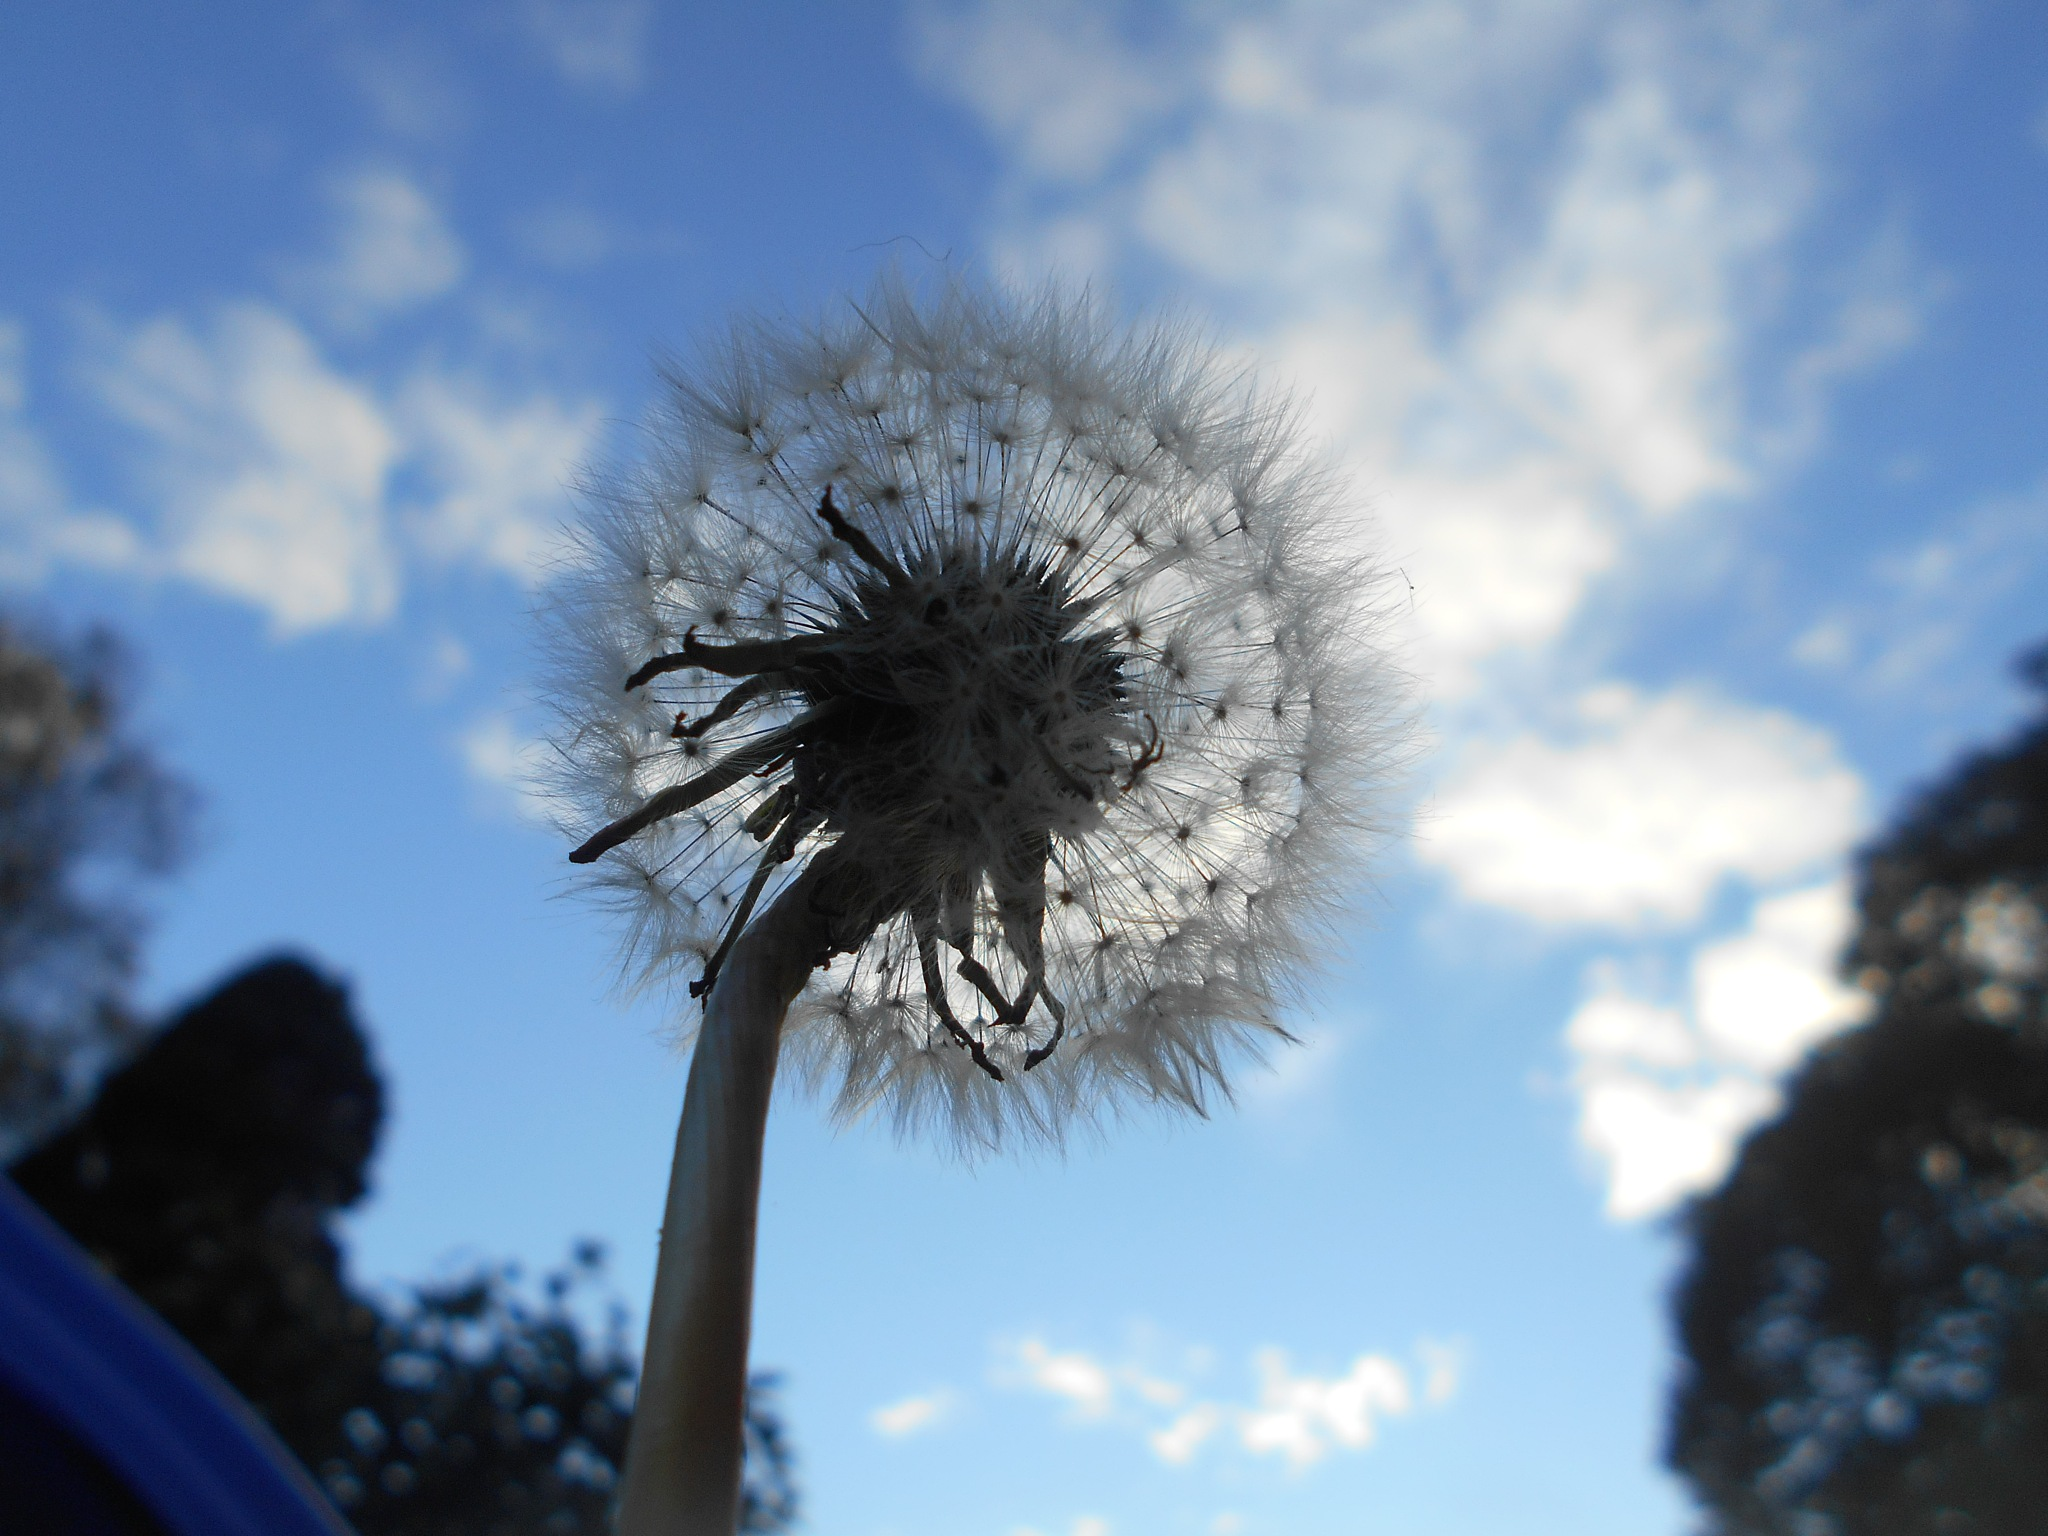 Looking up through a Dandelion seed. by bestwick.annette